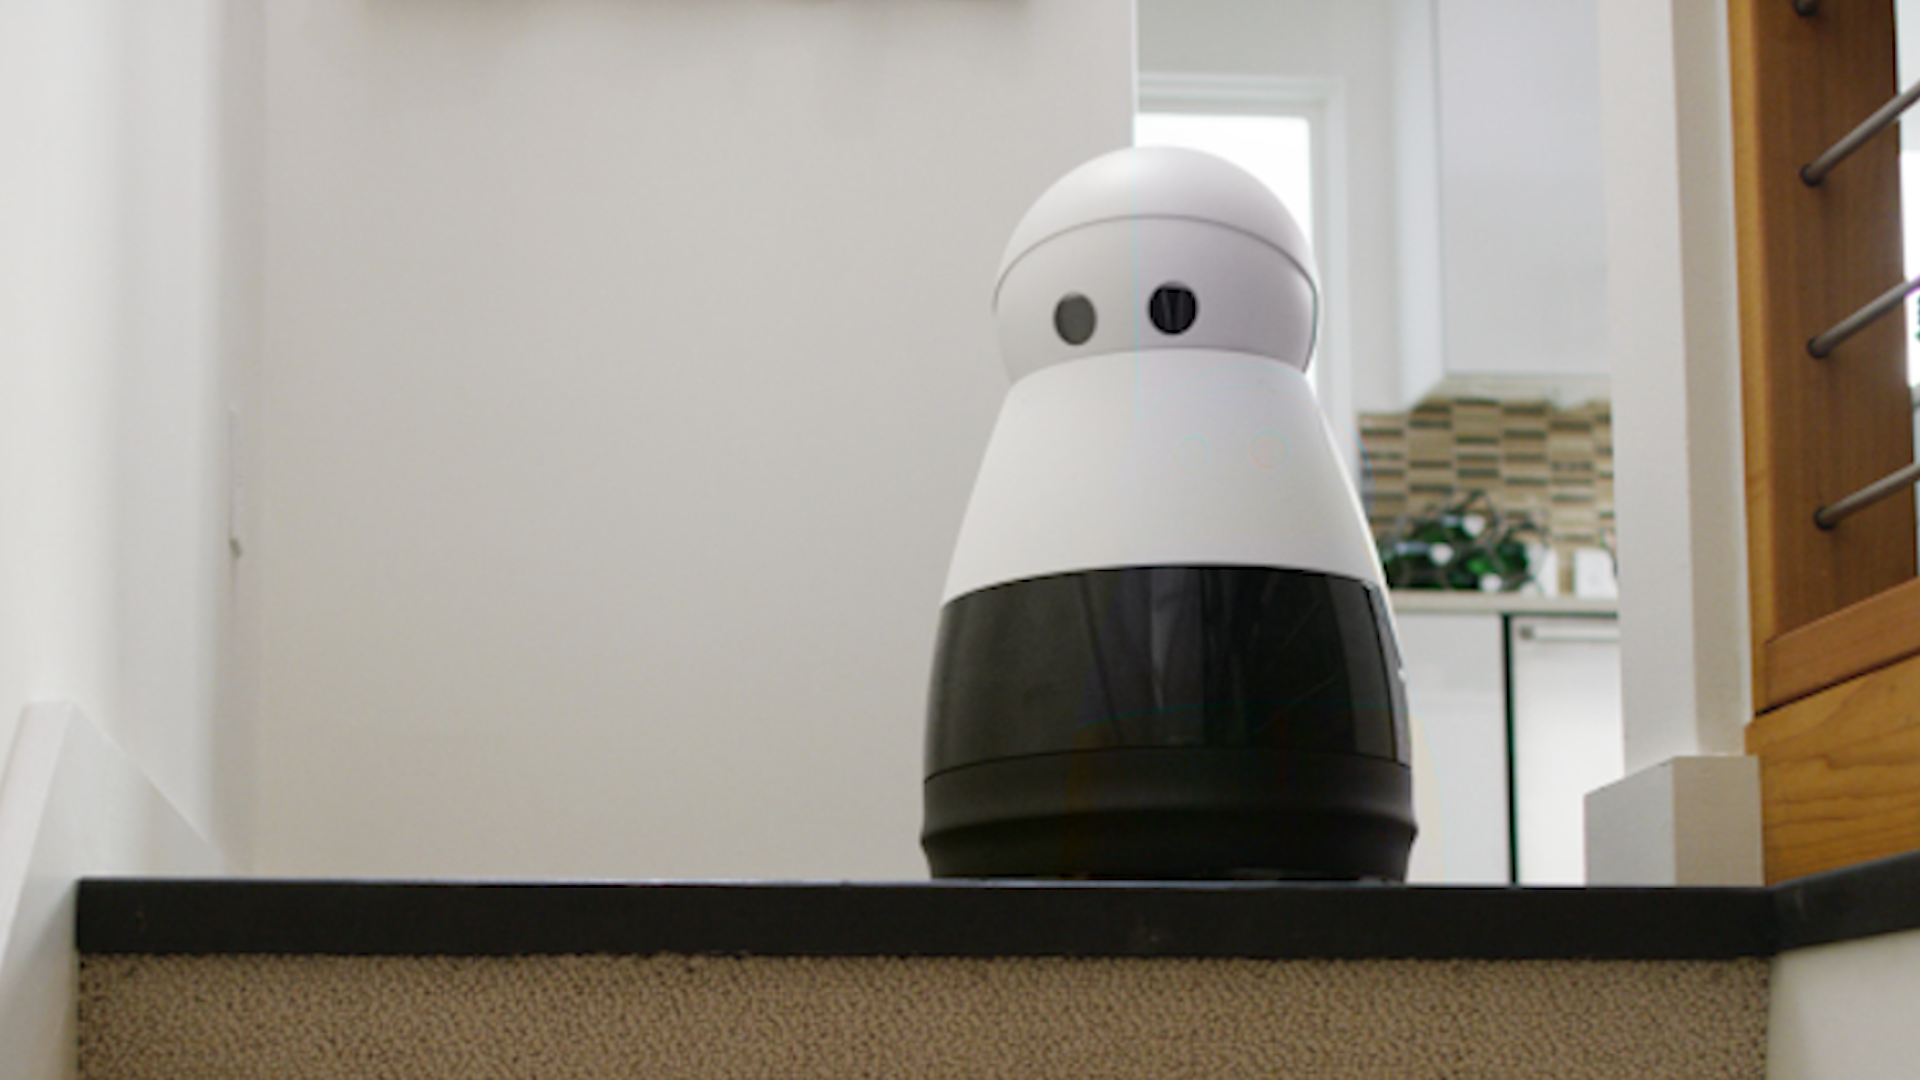 Mayfield Robotics' Kuri is an adorable home robot